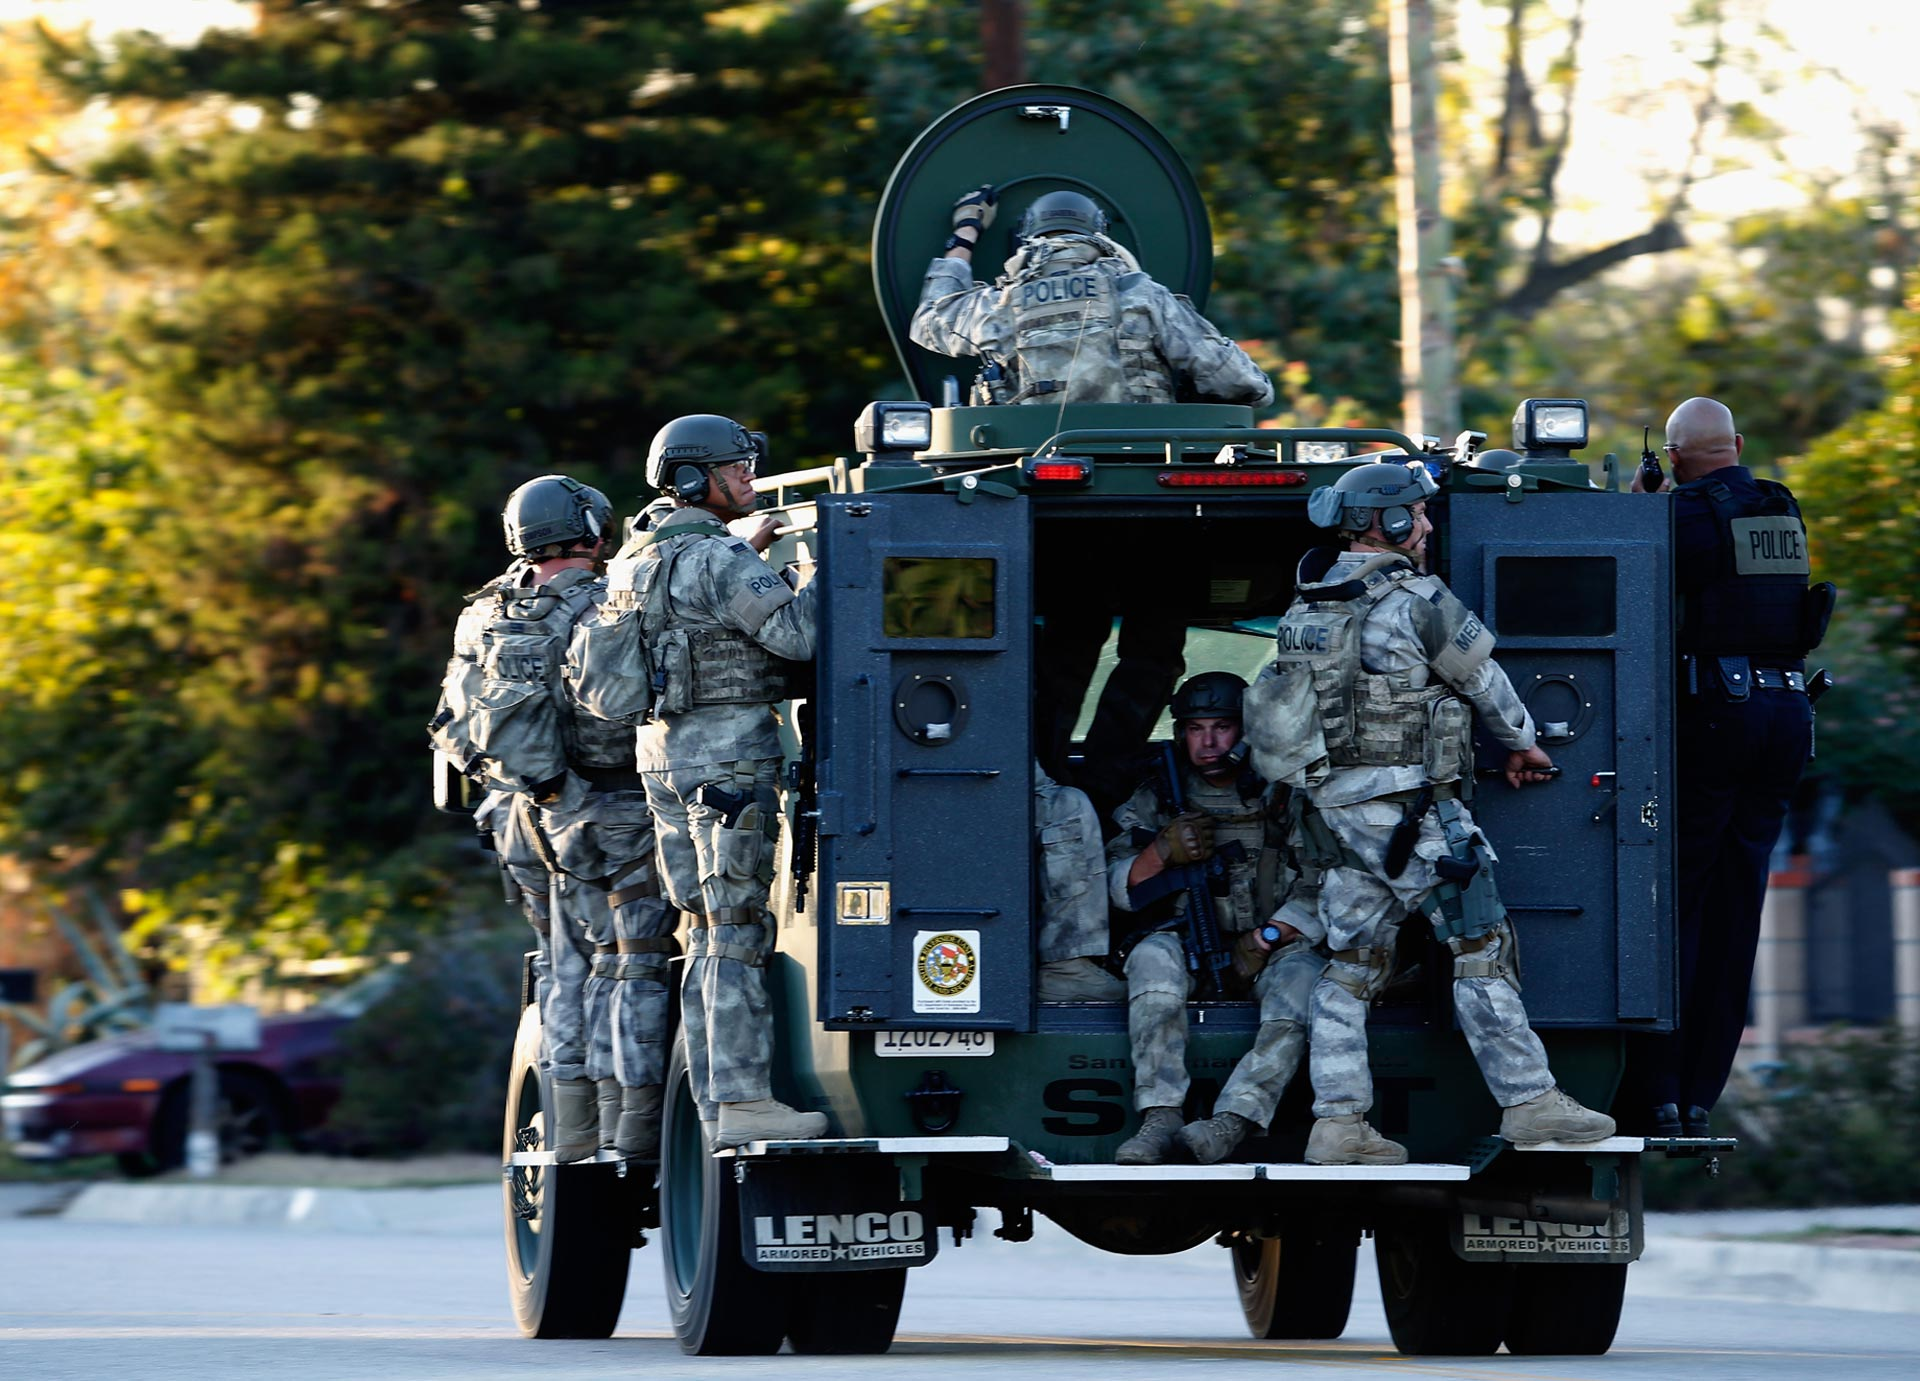 SWAT officers enter a neighborhood where suspects were believed to be after the mass shooting at San Bernardino's Inland Regional Center on Dec. 2, 2015.